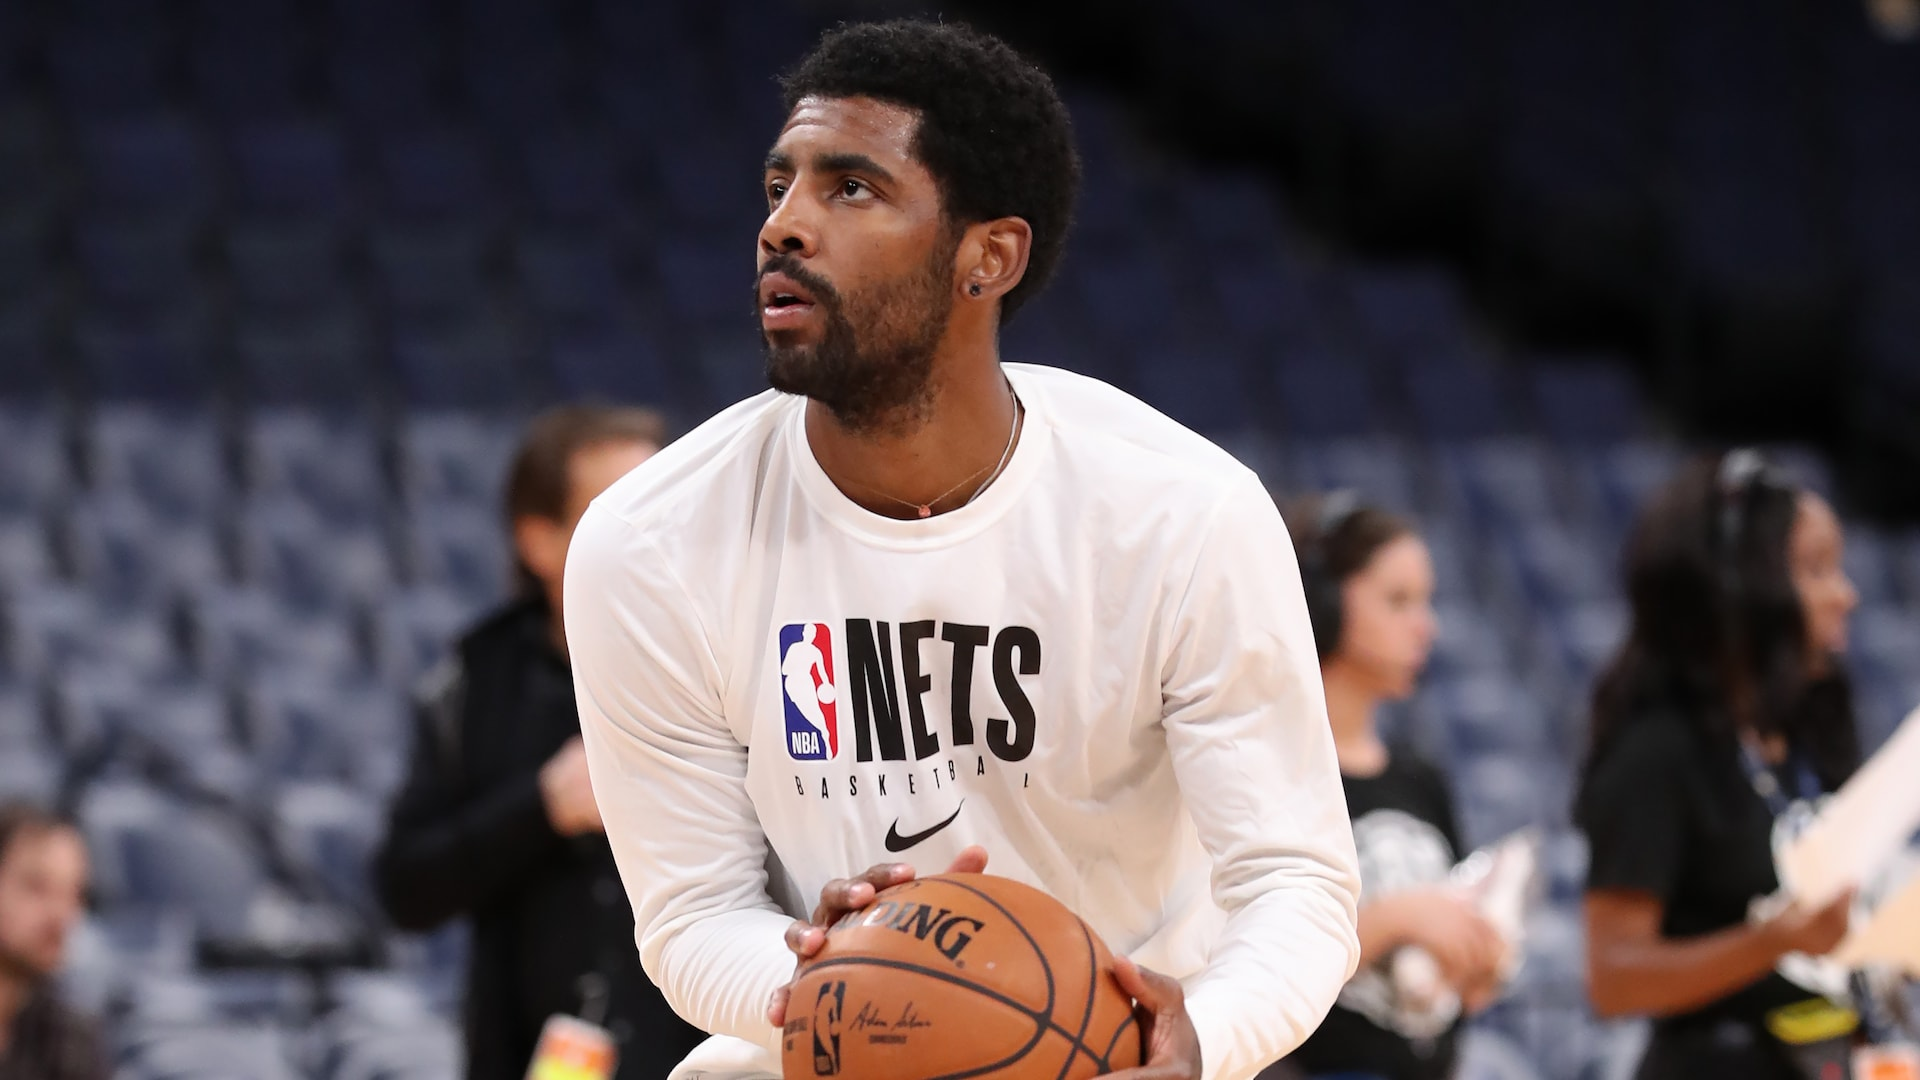 Kyrie Irving hoping to return to court next week